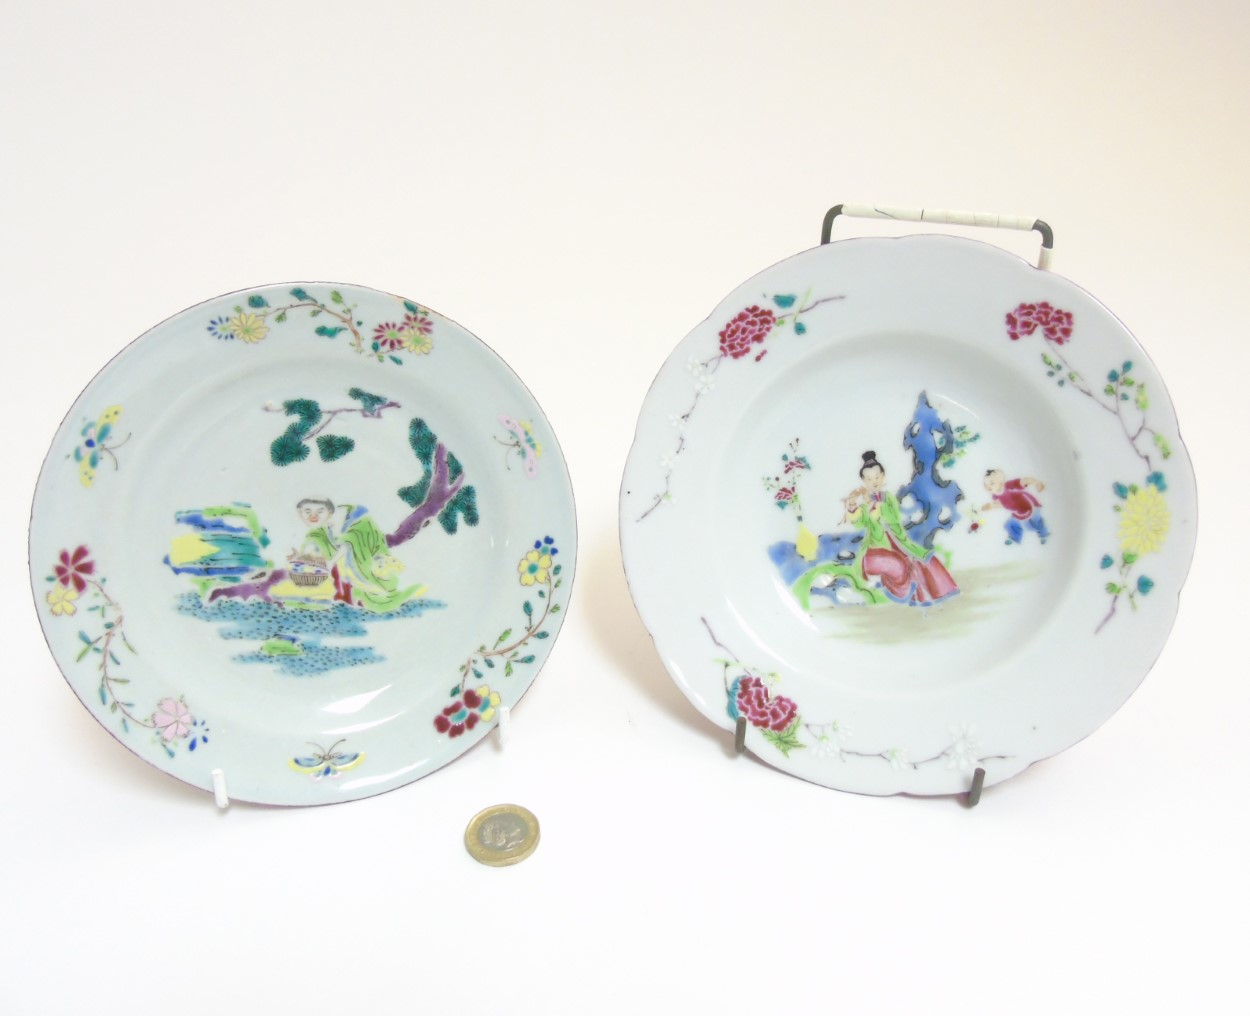 Lot 16 - Two Chinese Famille Rose plates comprising a plate and bowl decorated with iridescent enamels,